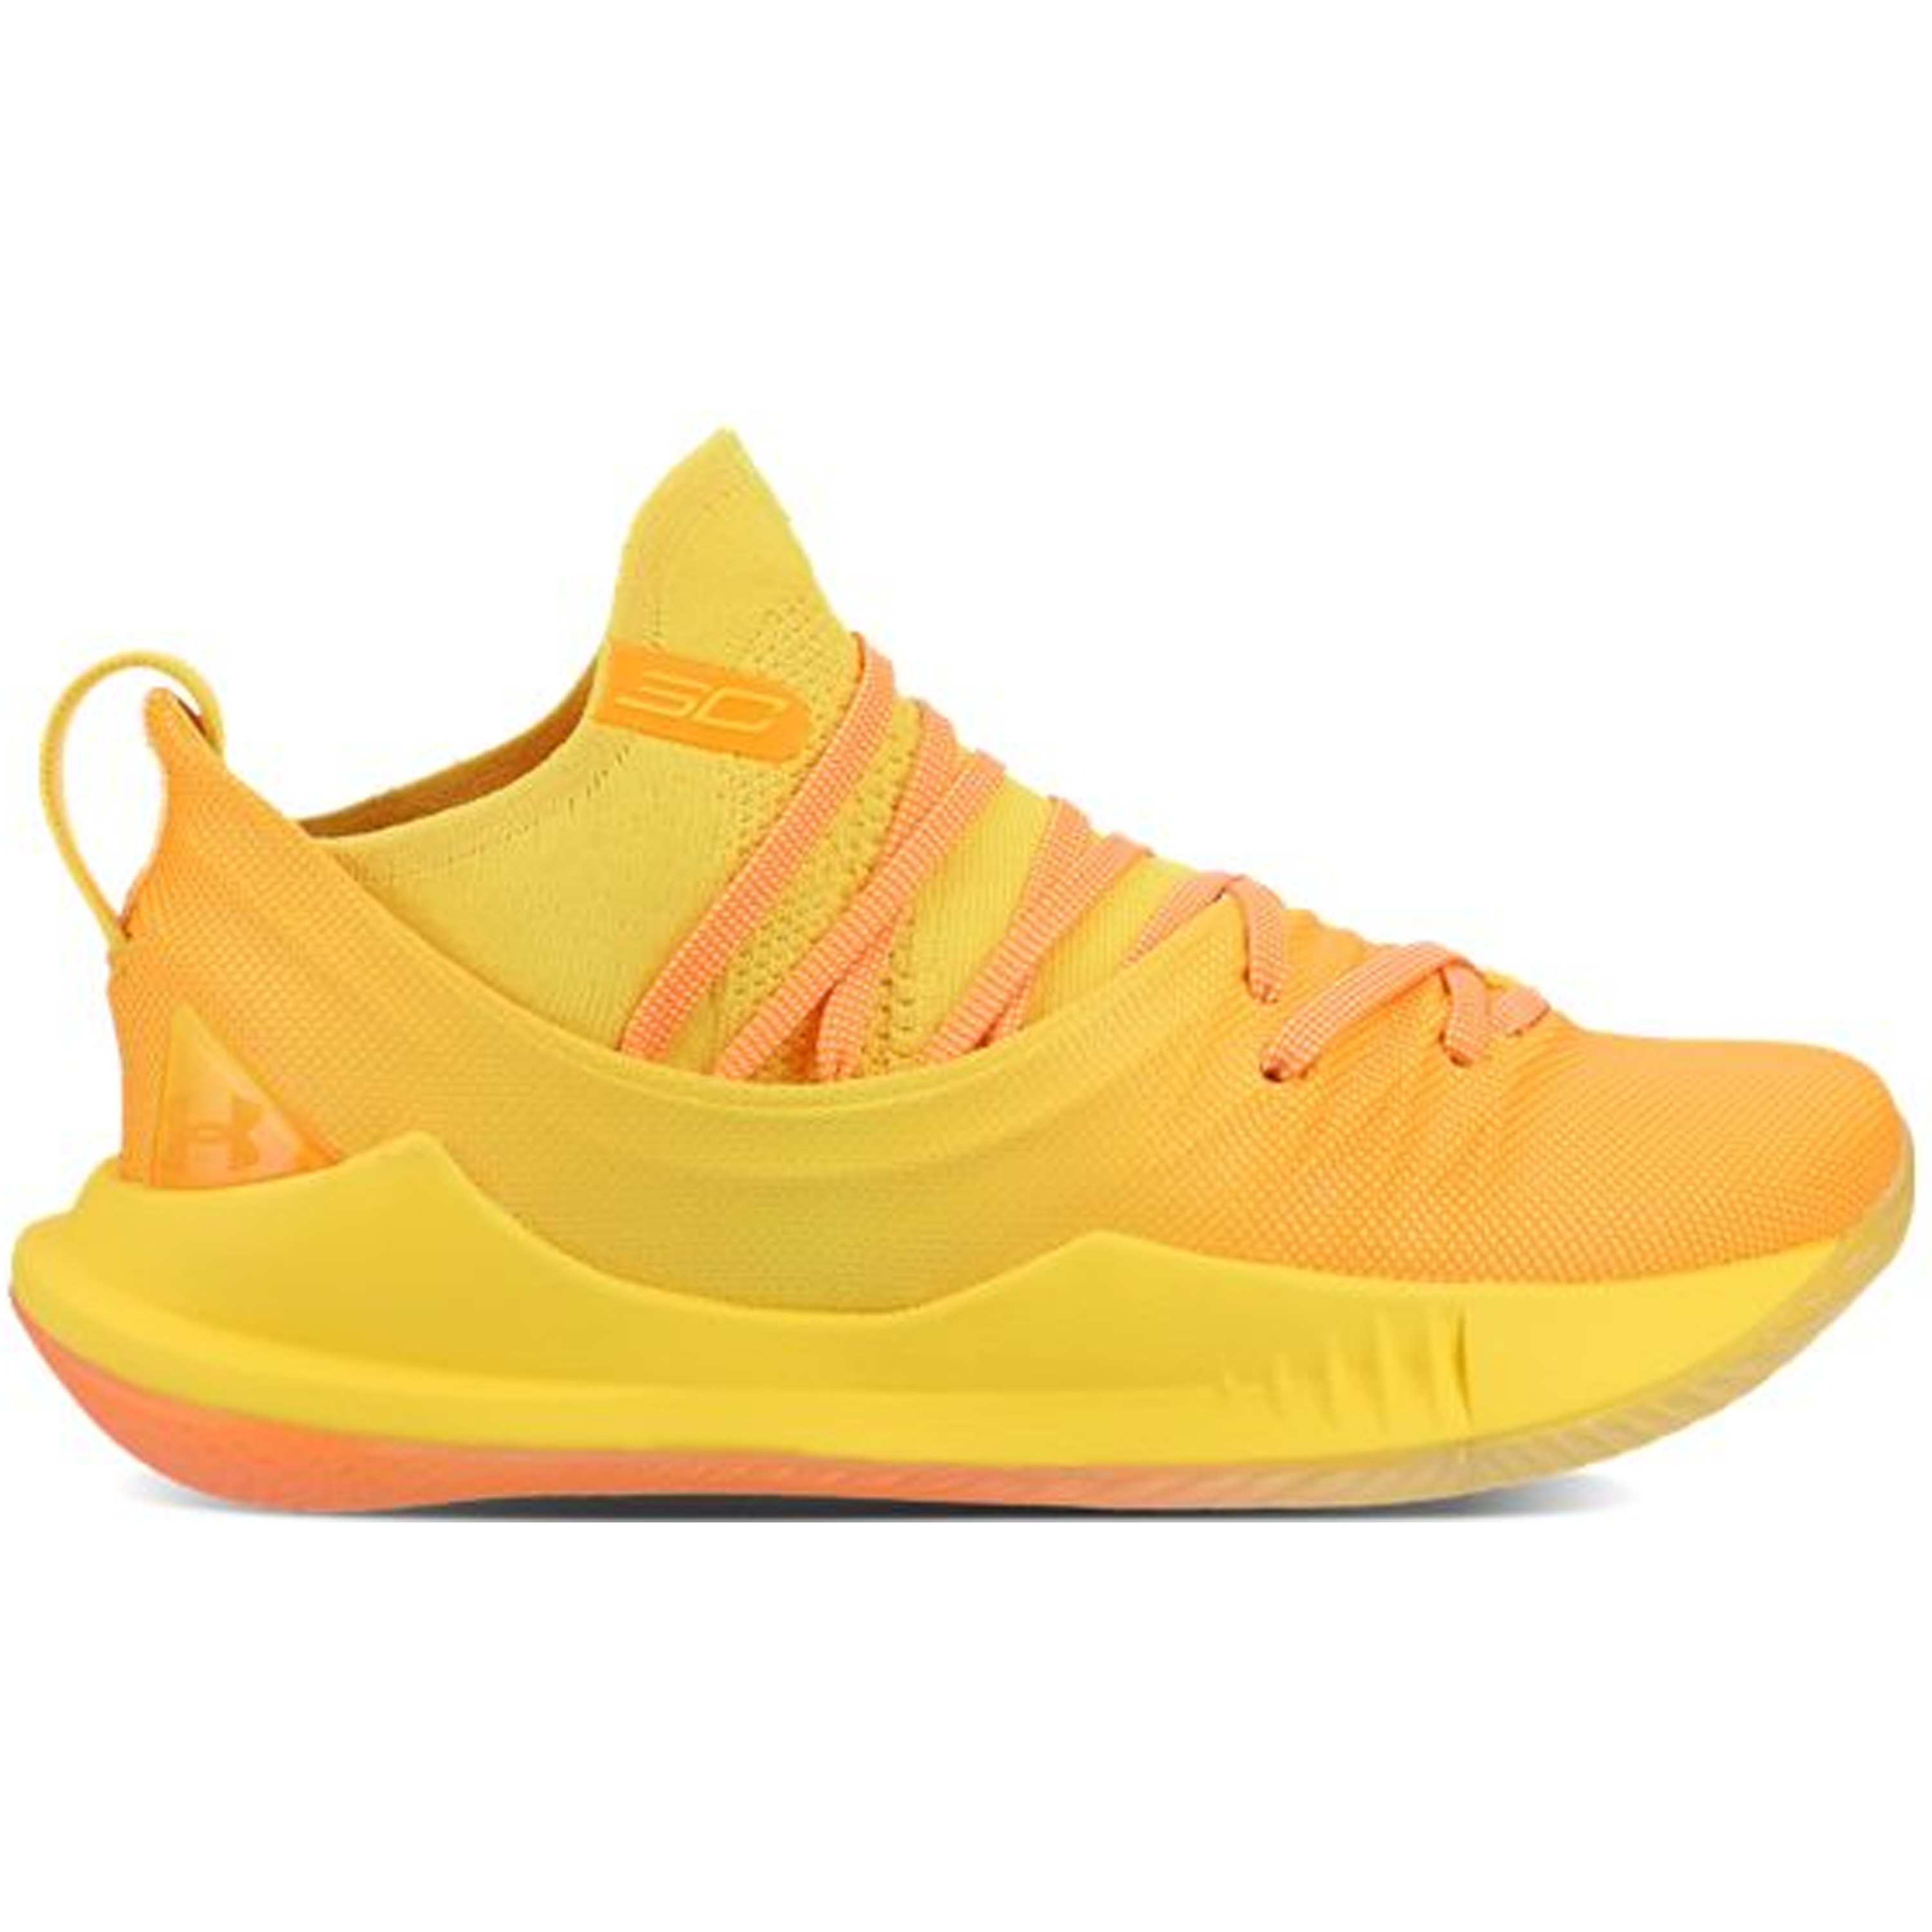 Under Armour Curry 5 Yellow Orange (3021708-700)